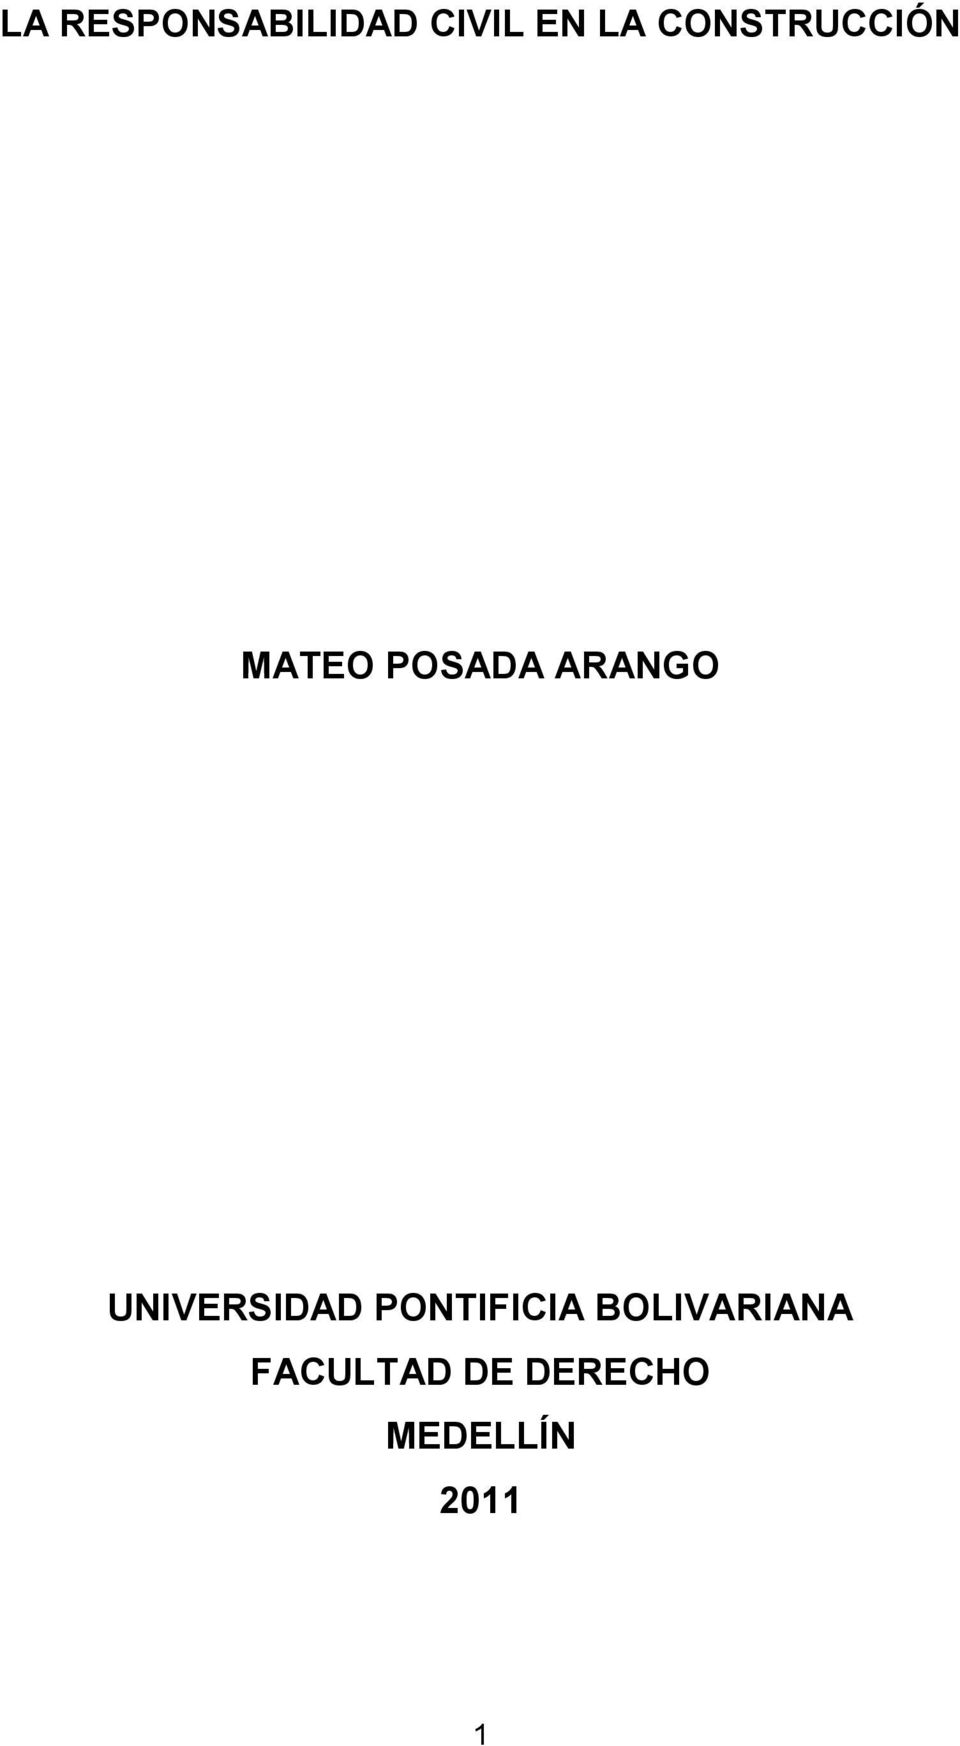 UNIVERSIDAD PONTIFICIA